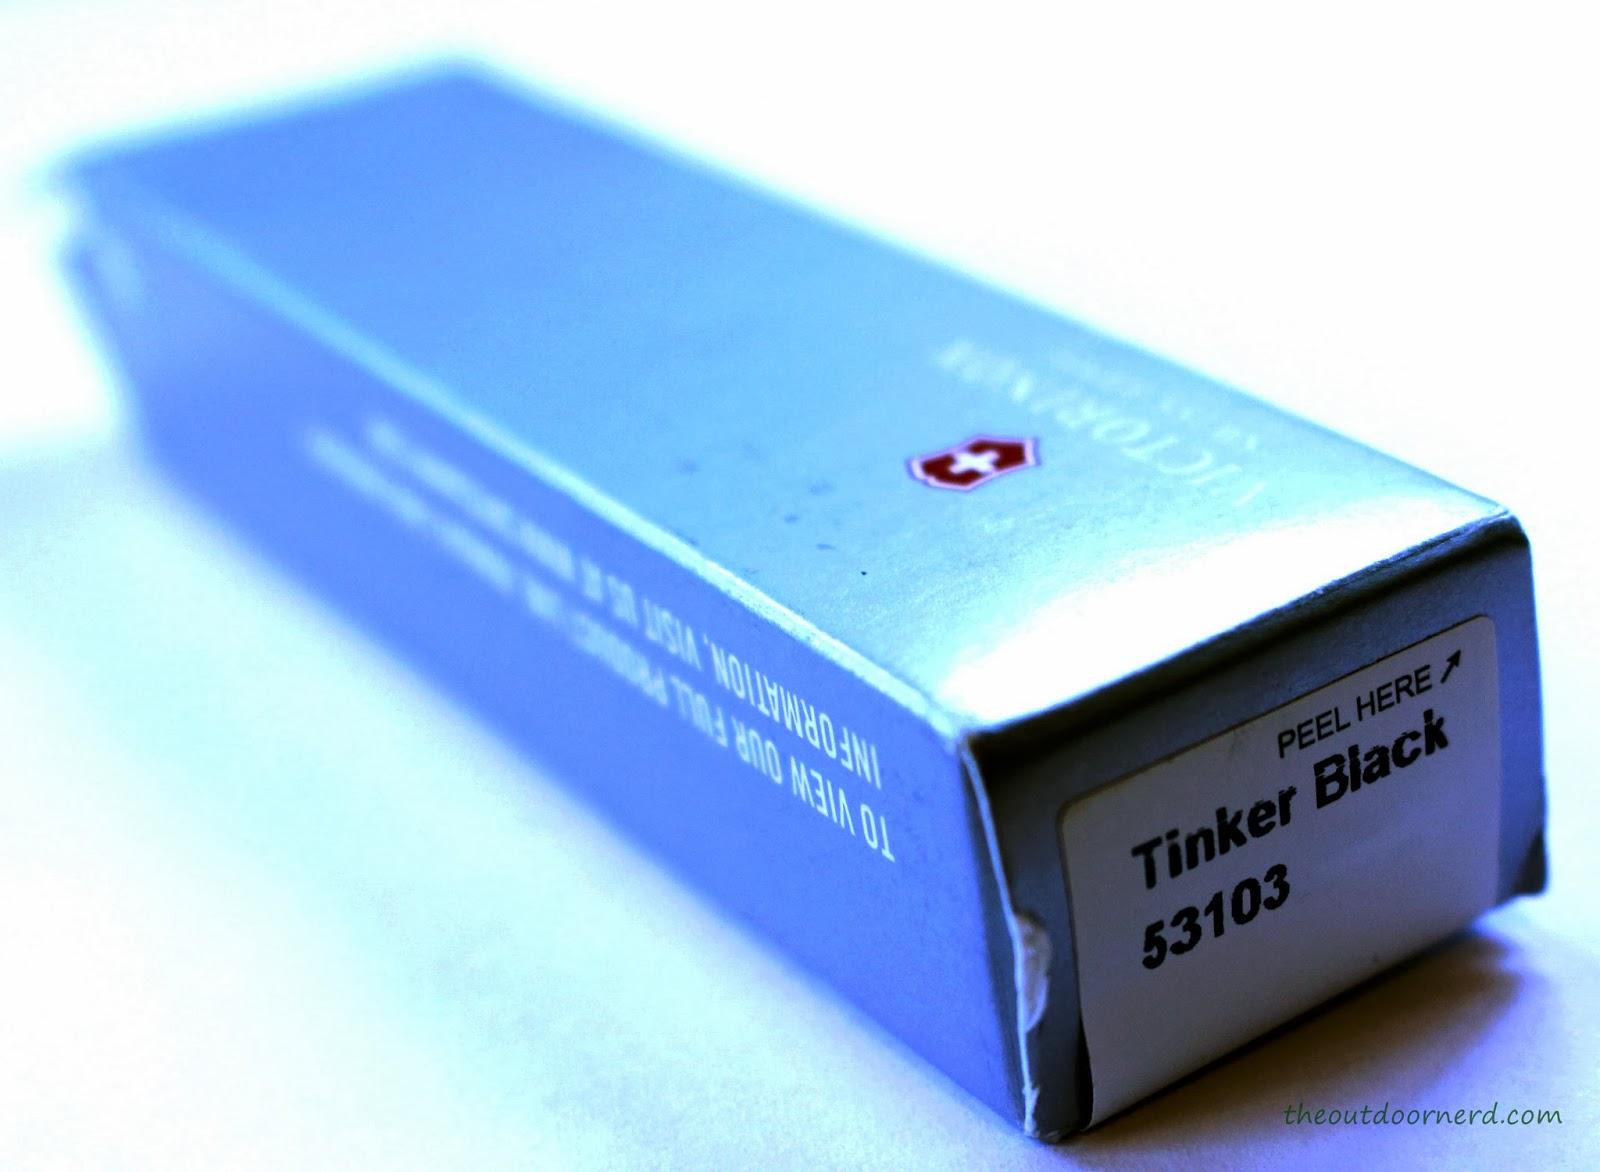 Victorinox Swiss Army Tinker Pocket Knife - Closeup Of Box 1